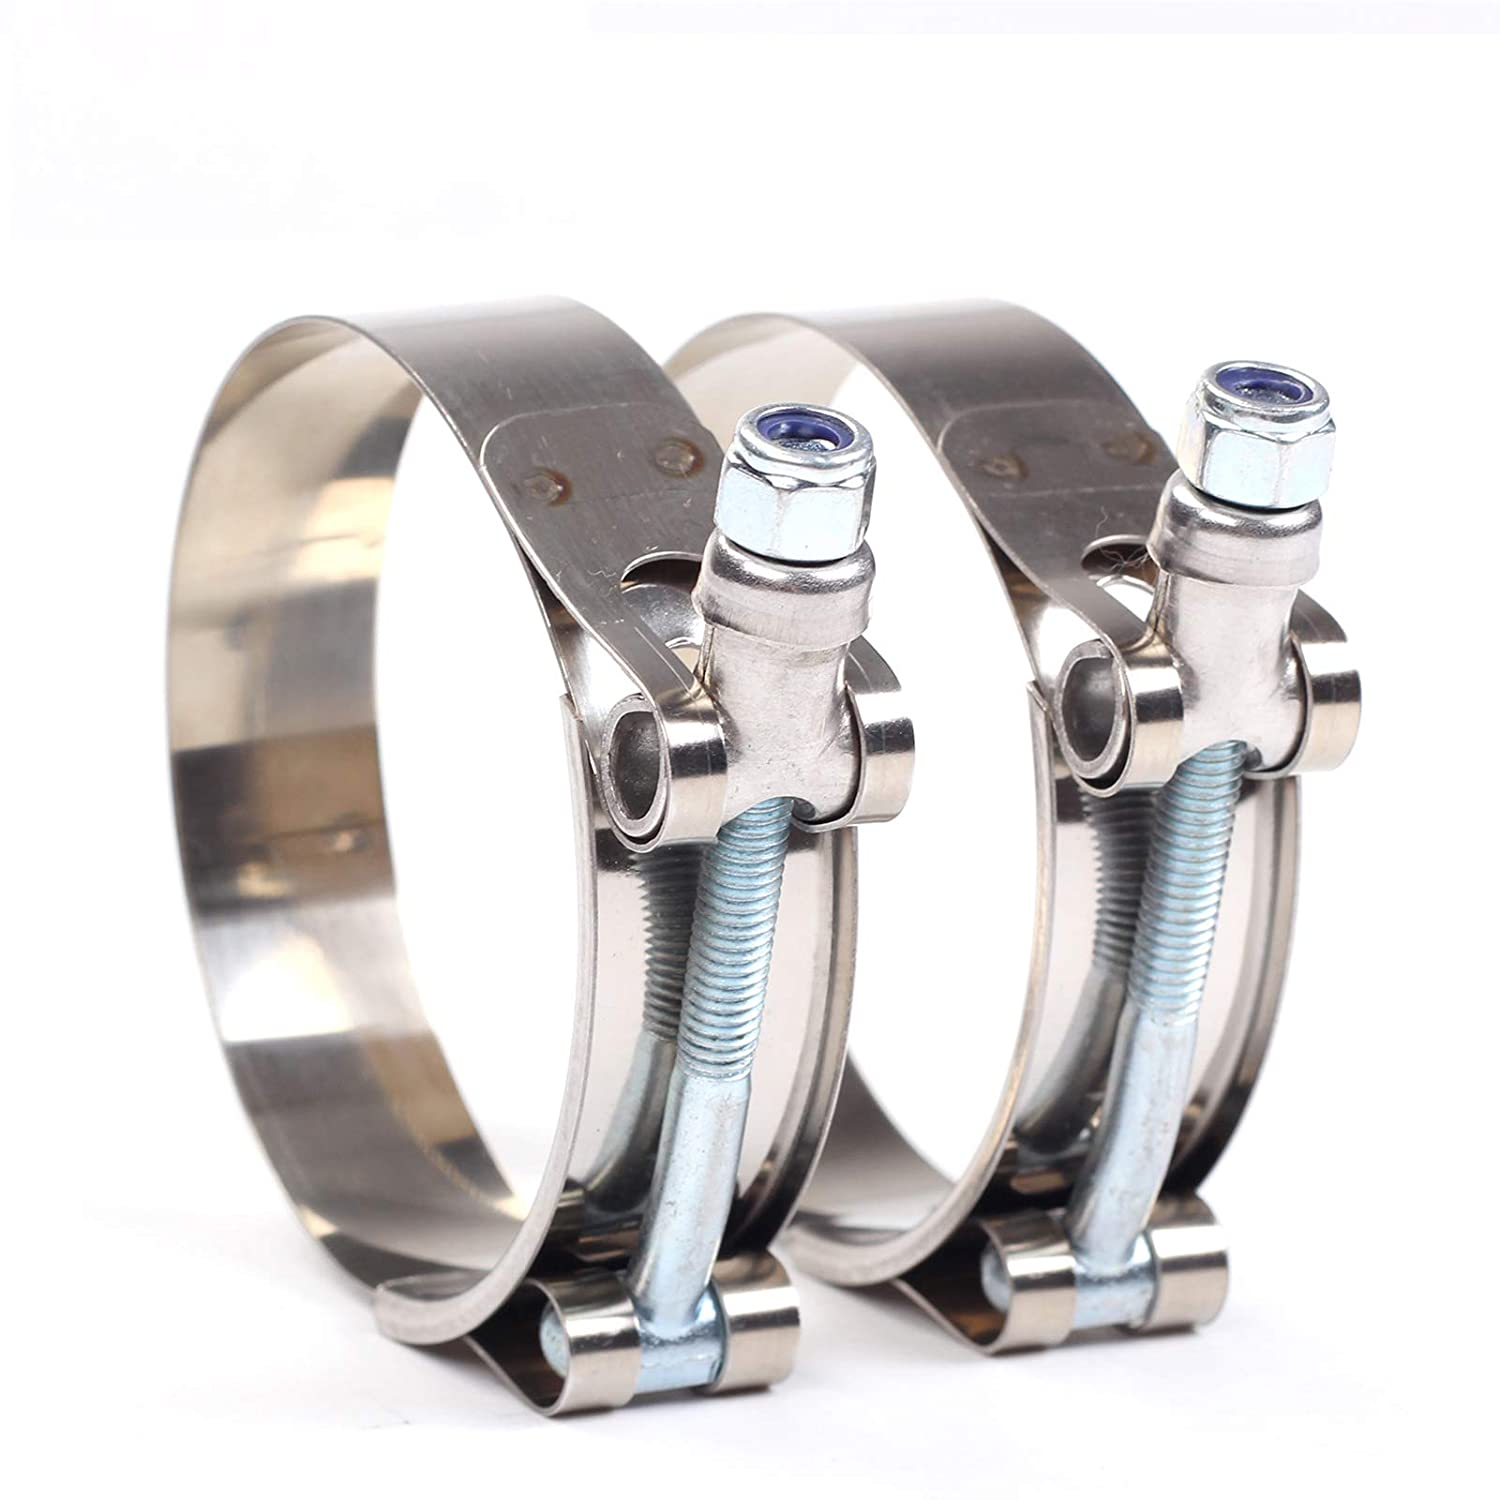 2Pcs,2.75inch 2X 2-3//4 77mm 85mm Stainless Steel T-Bolt Clamps Turbo Intake Intercooler Clamp